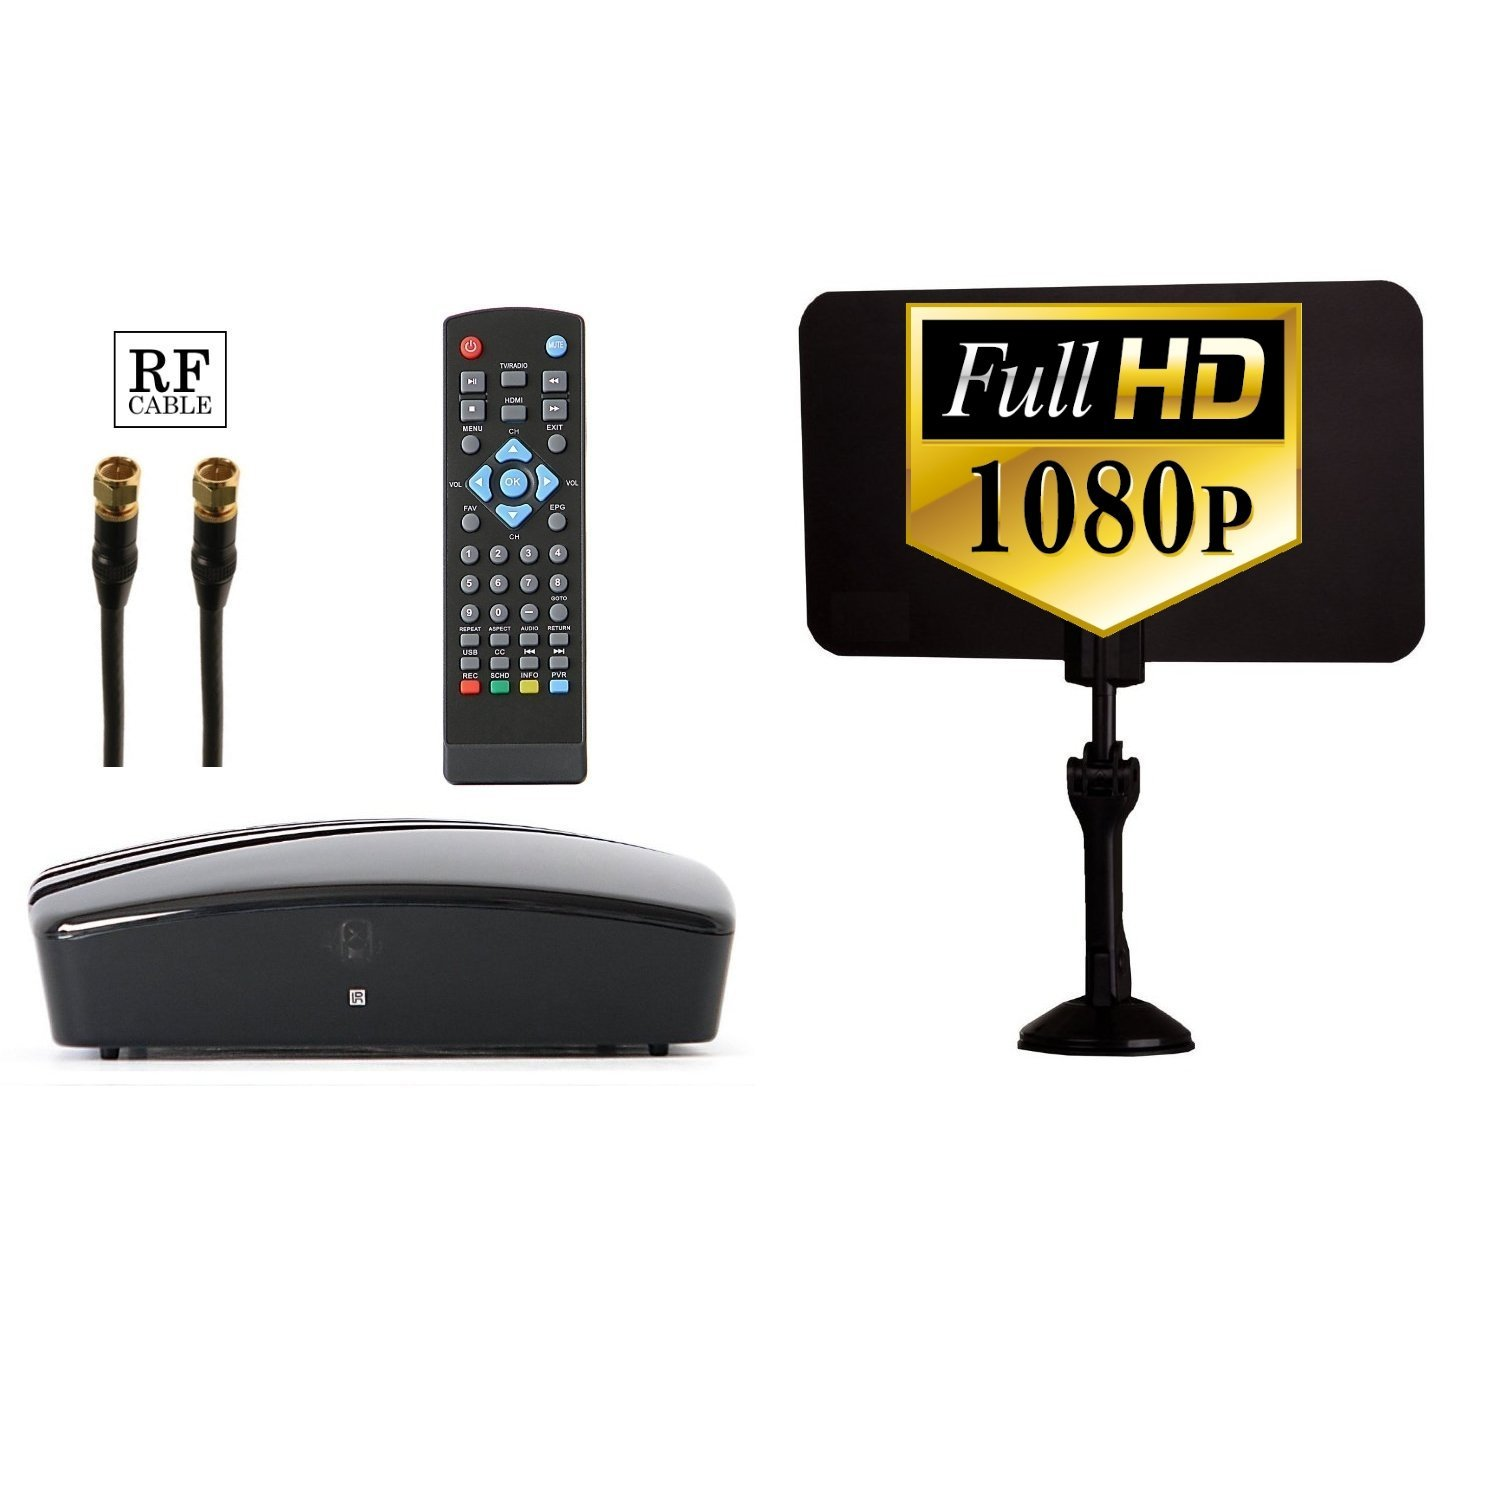 Digital TV Converter Box + Digital Antenna + RF and RCA Cable - Complete Bundle to View and Record HD Channels FREE (Instant or Scheduled Recording, 1080P HDTV, HDMI Output And 7 Day Program Guide)